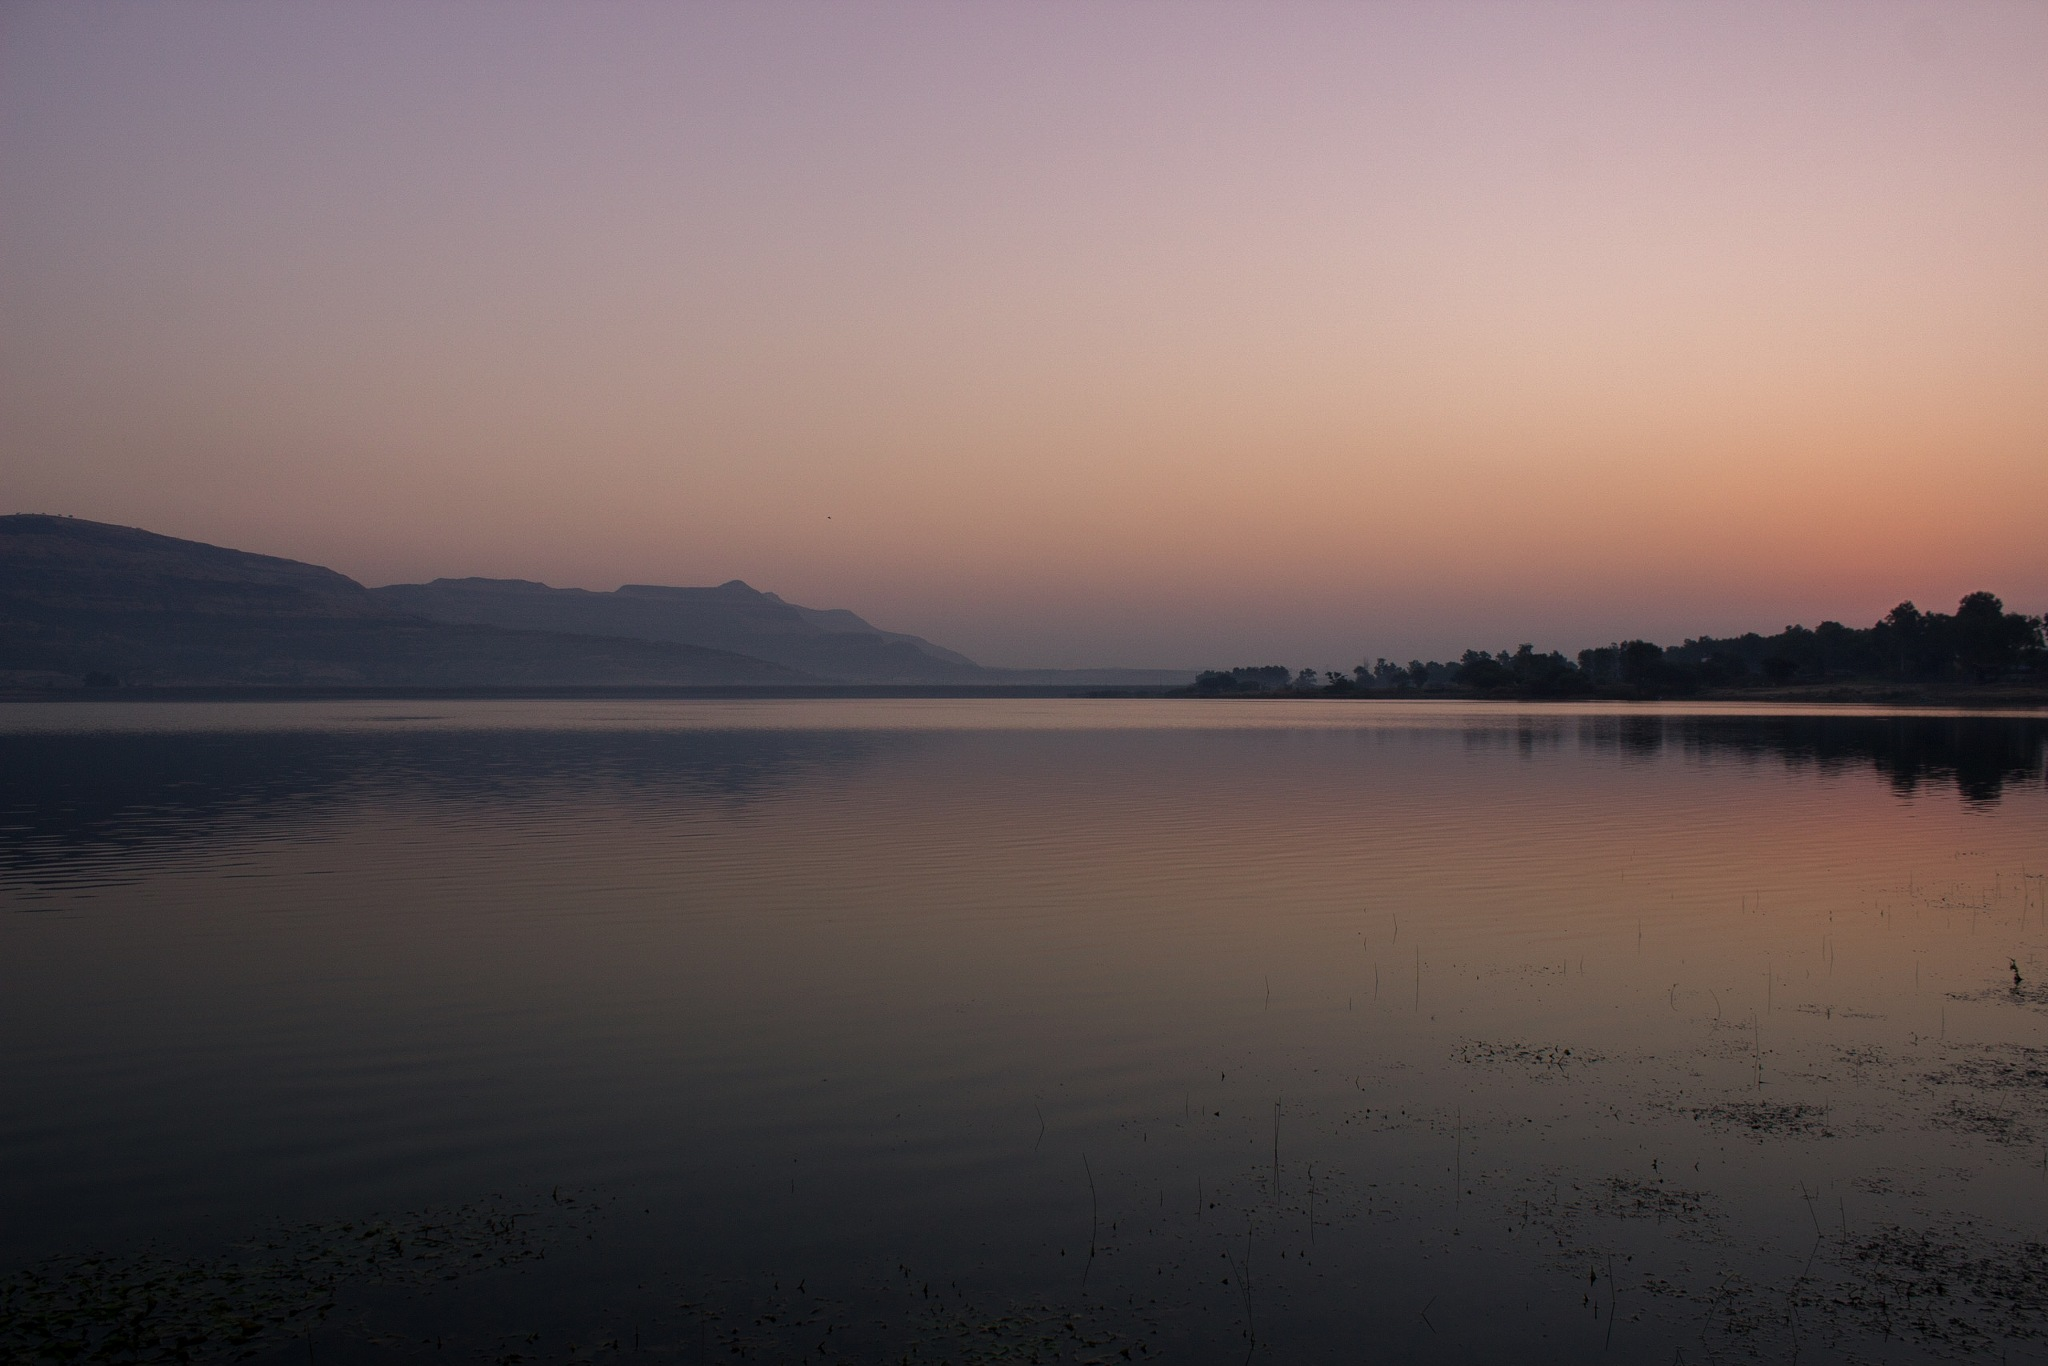 Lake before sunrise by Sonia S